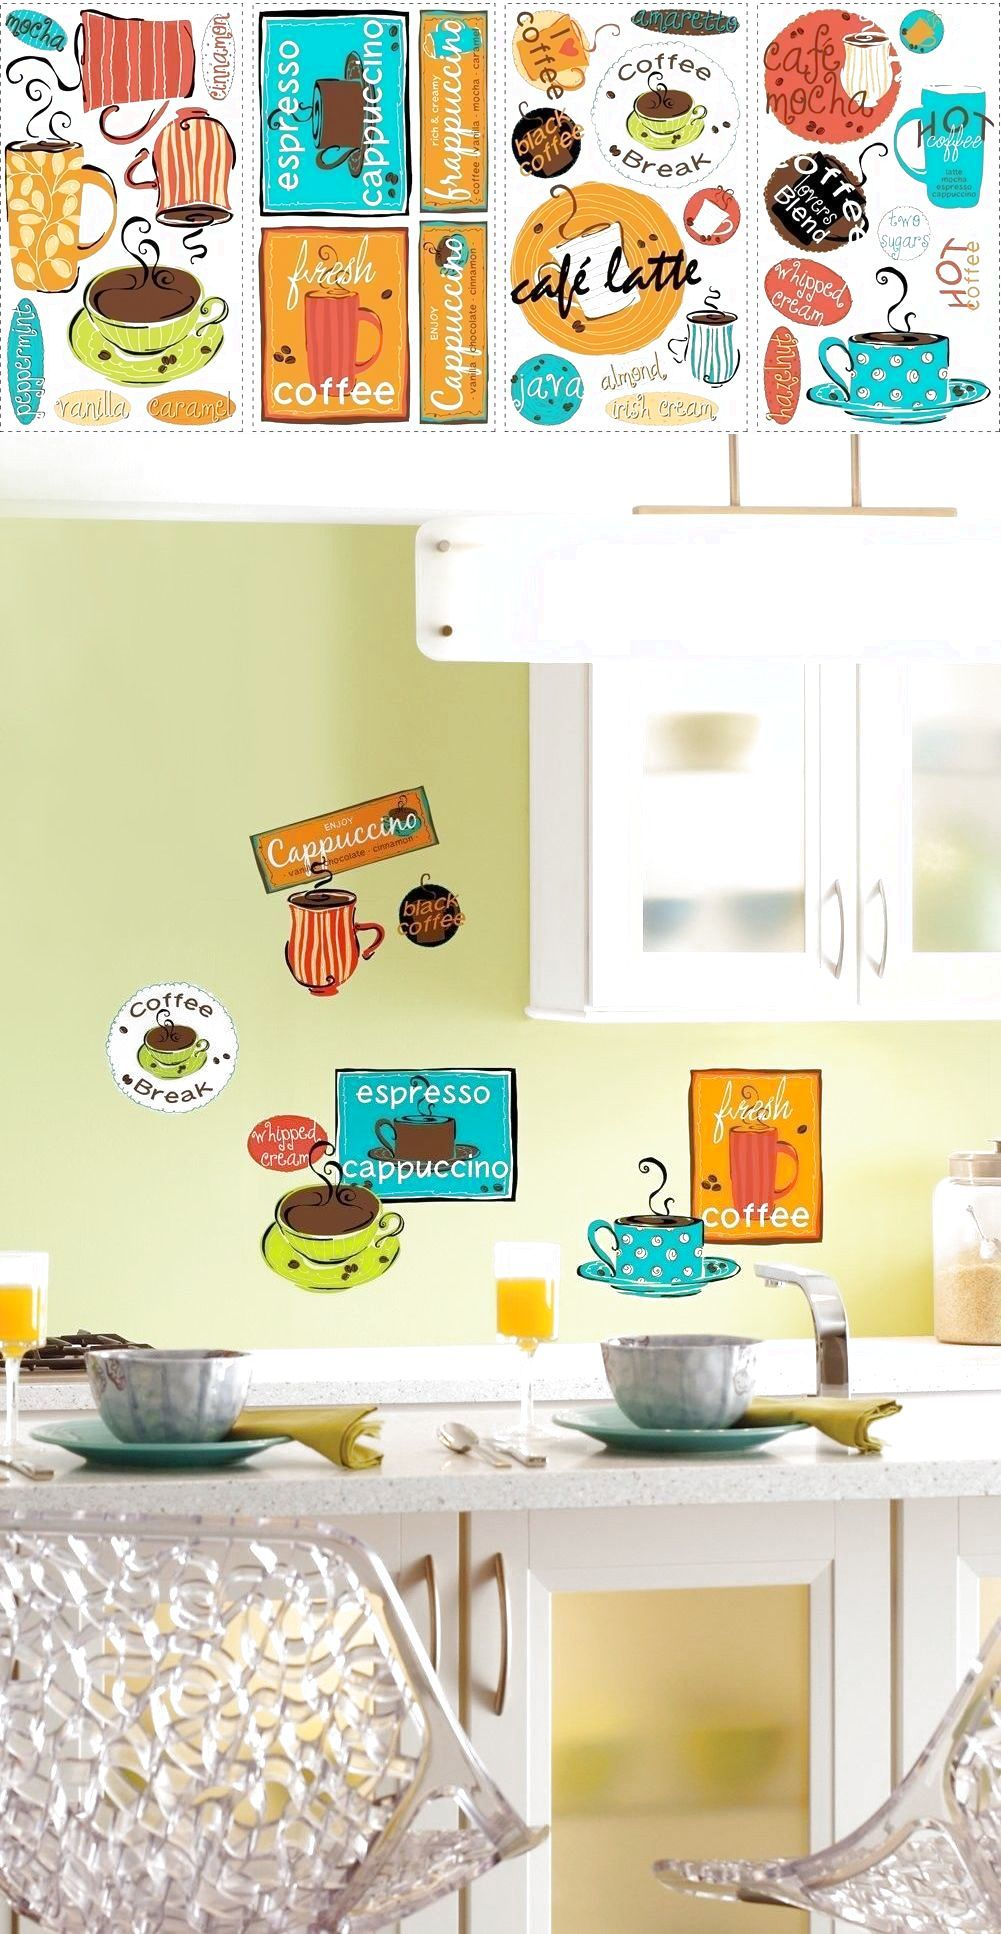 CAFE 32 BiG Wall Stickers COFFEE CUP JAVA Kitchen Room Decor Decals ...